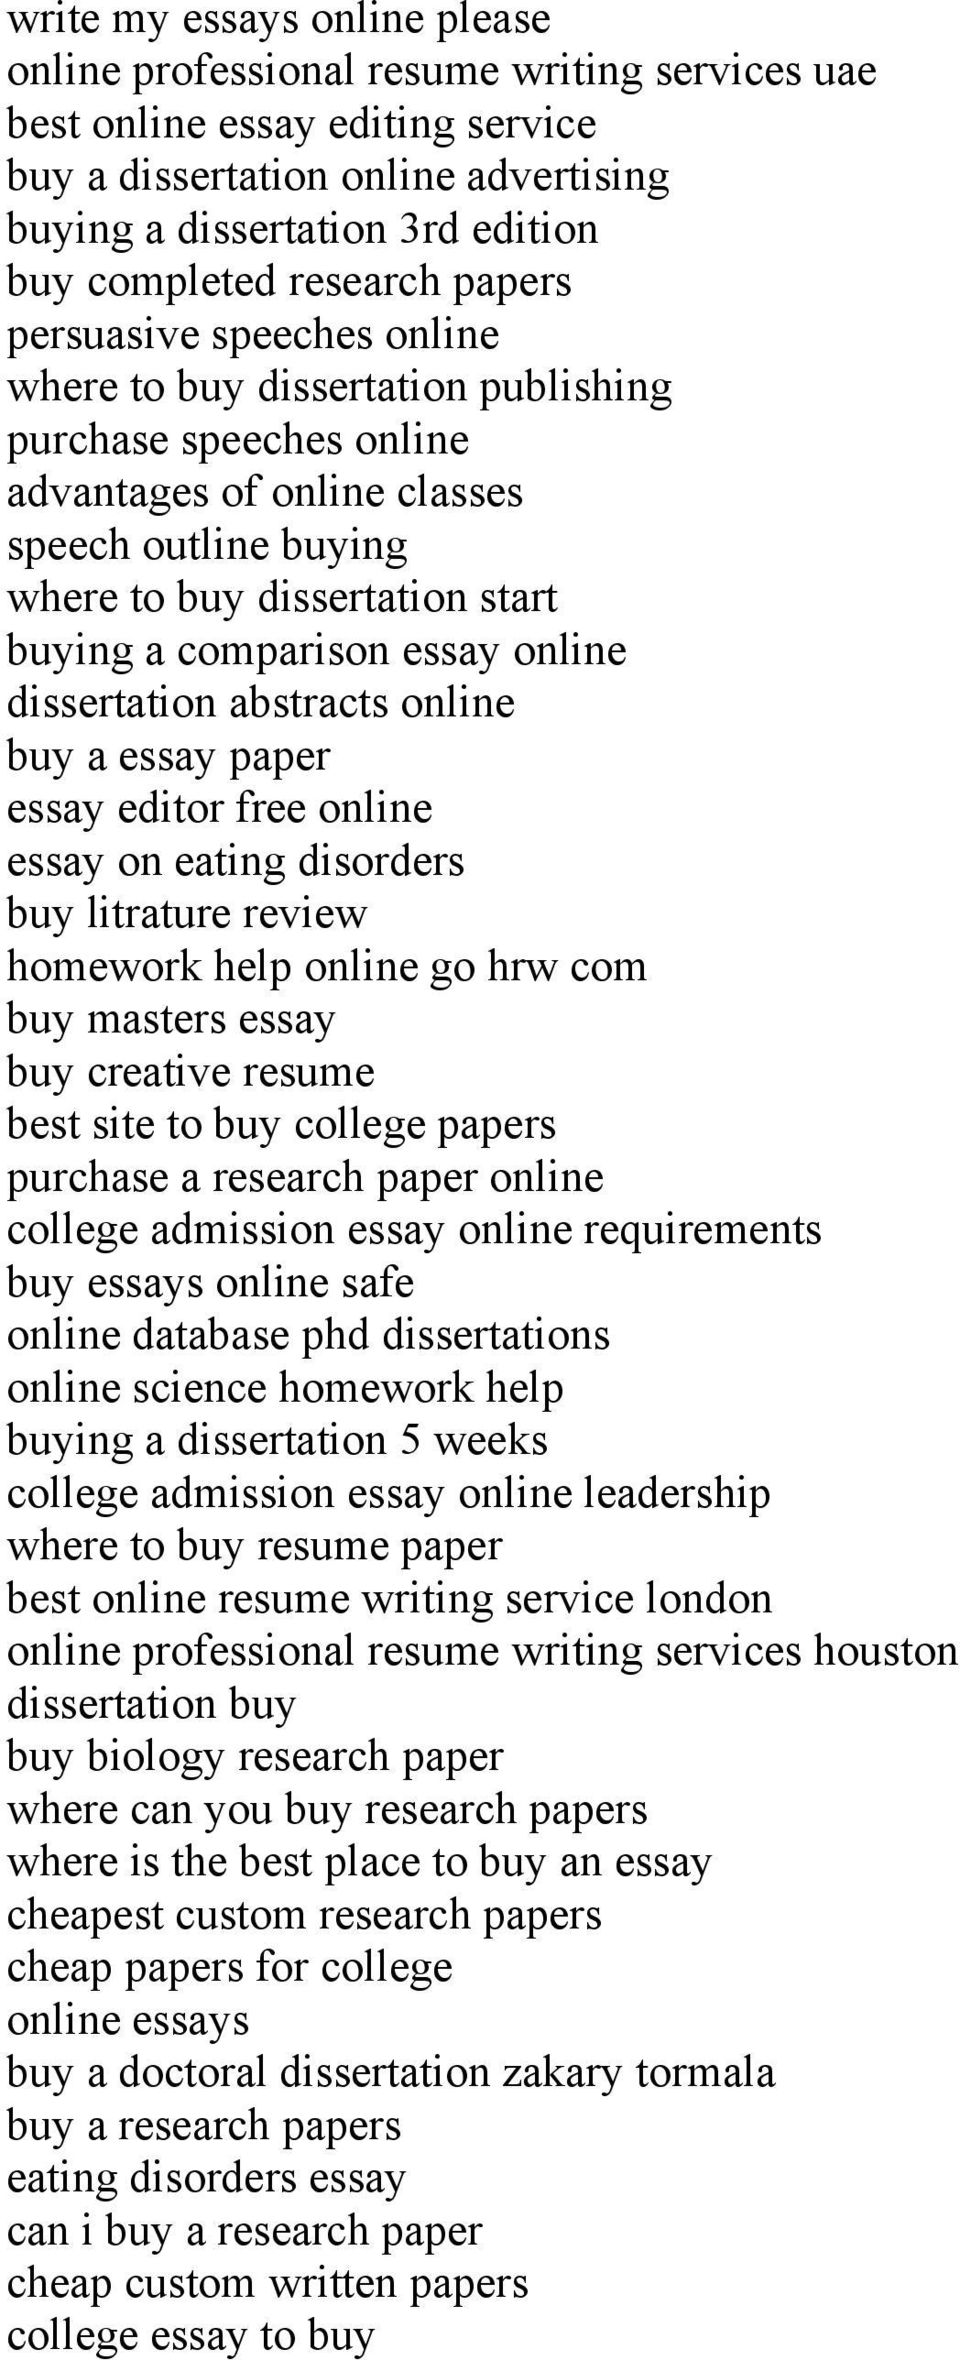 017 Is Buying Essays Online Safe Page 5 Research Awesome Full